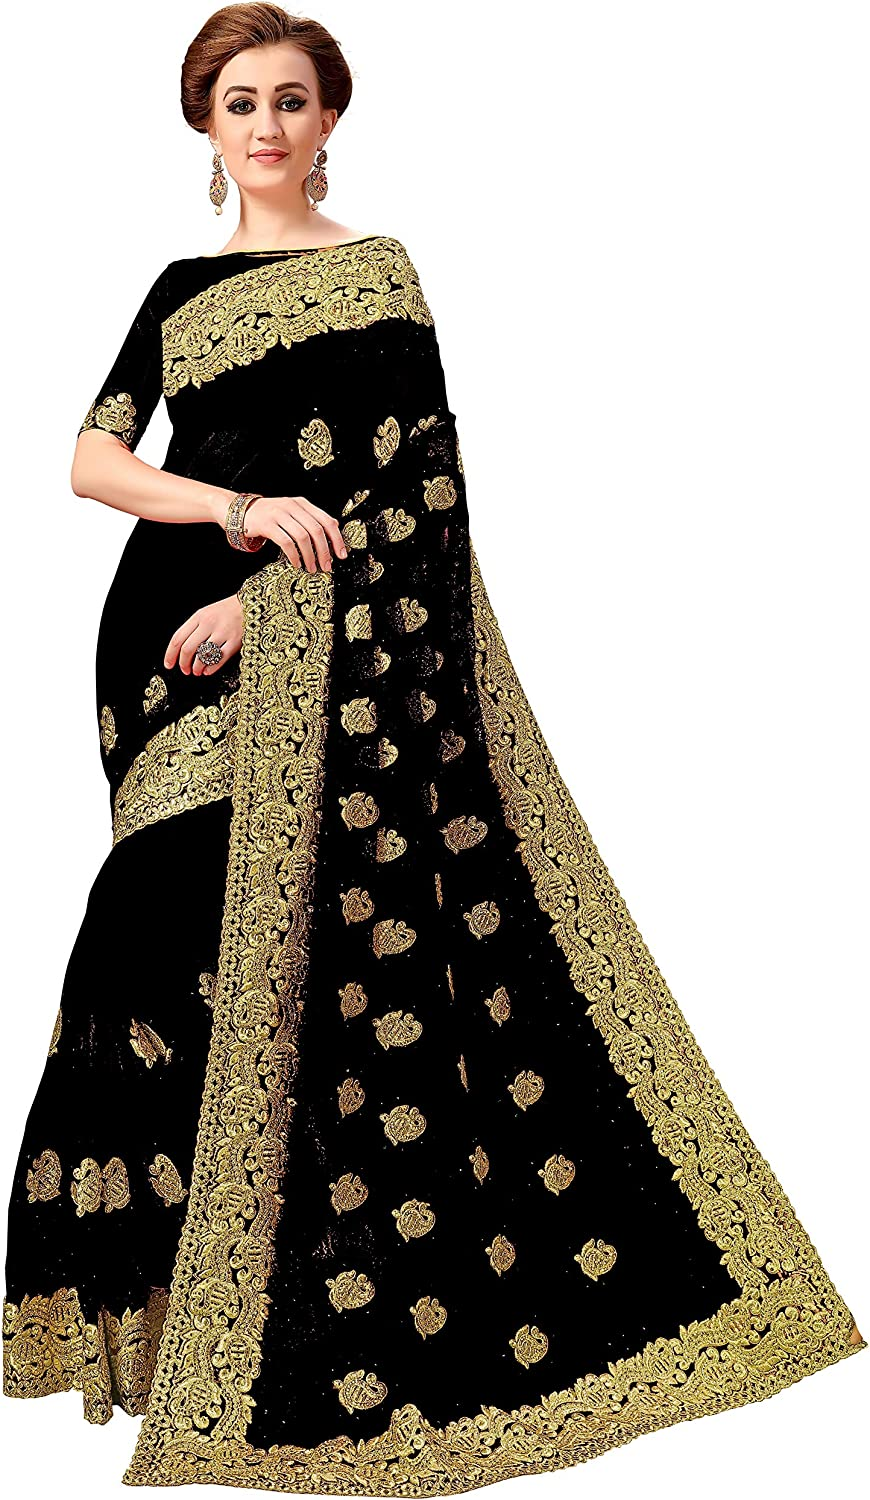 Nivah Fashion Women's Net Embroidery work With Diamond's material Saree K796